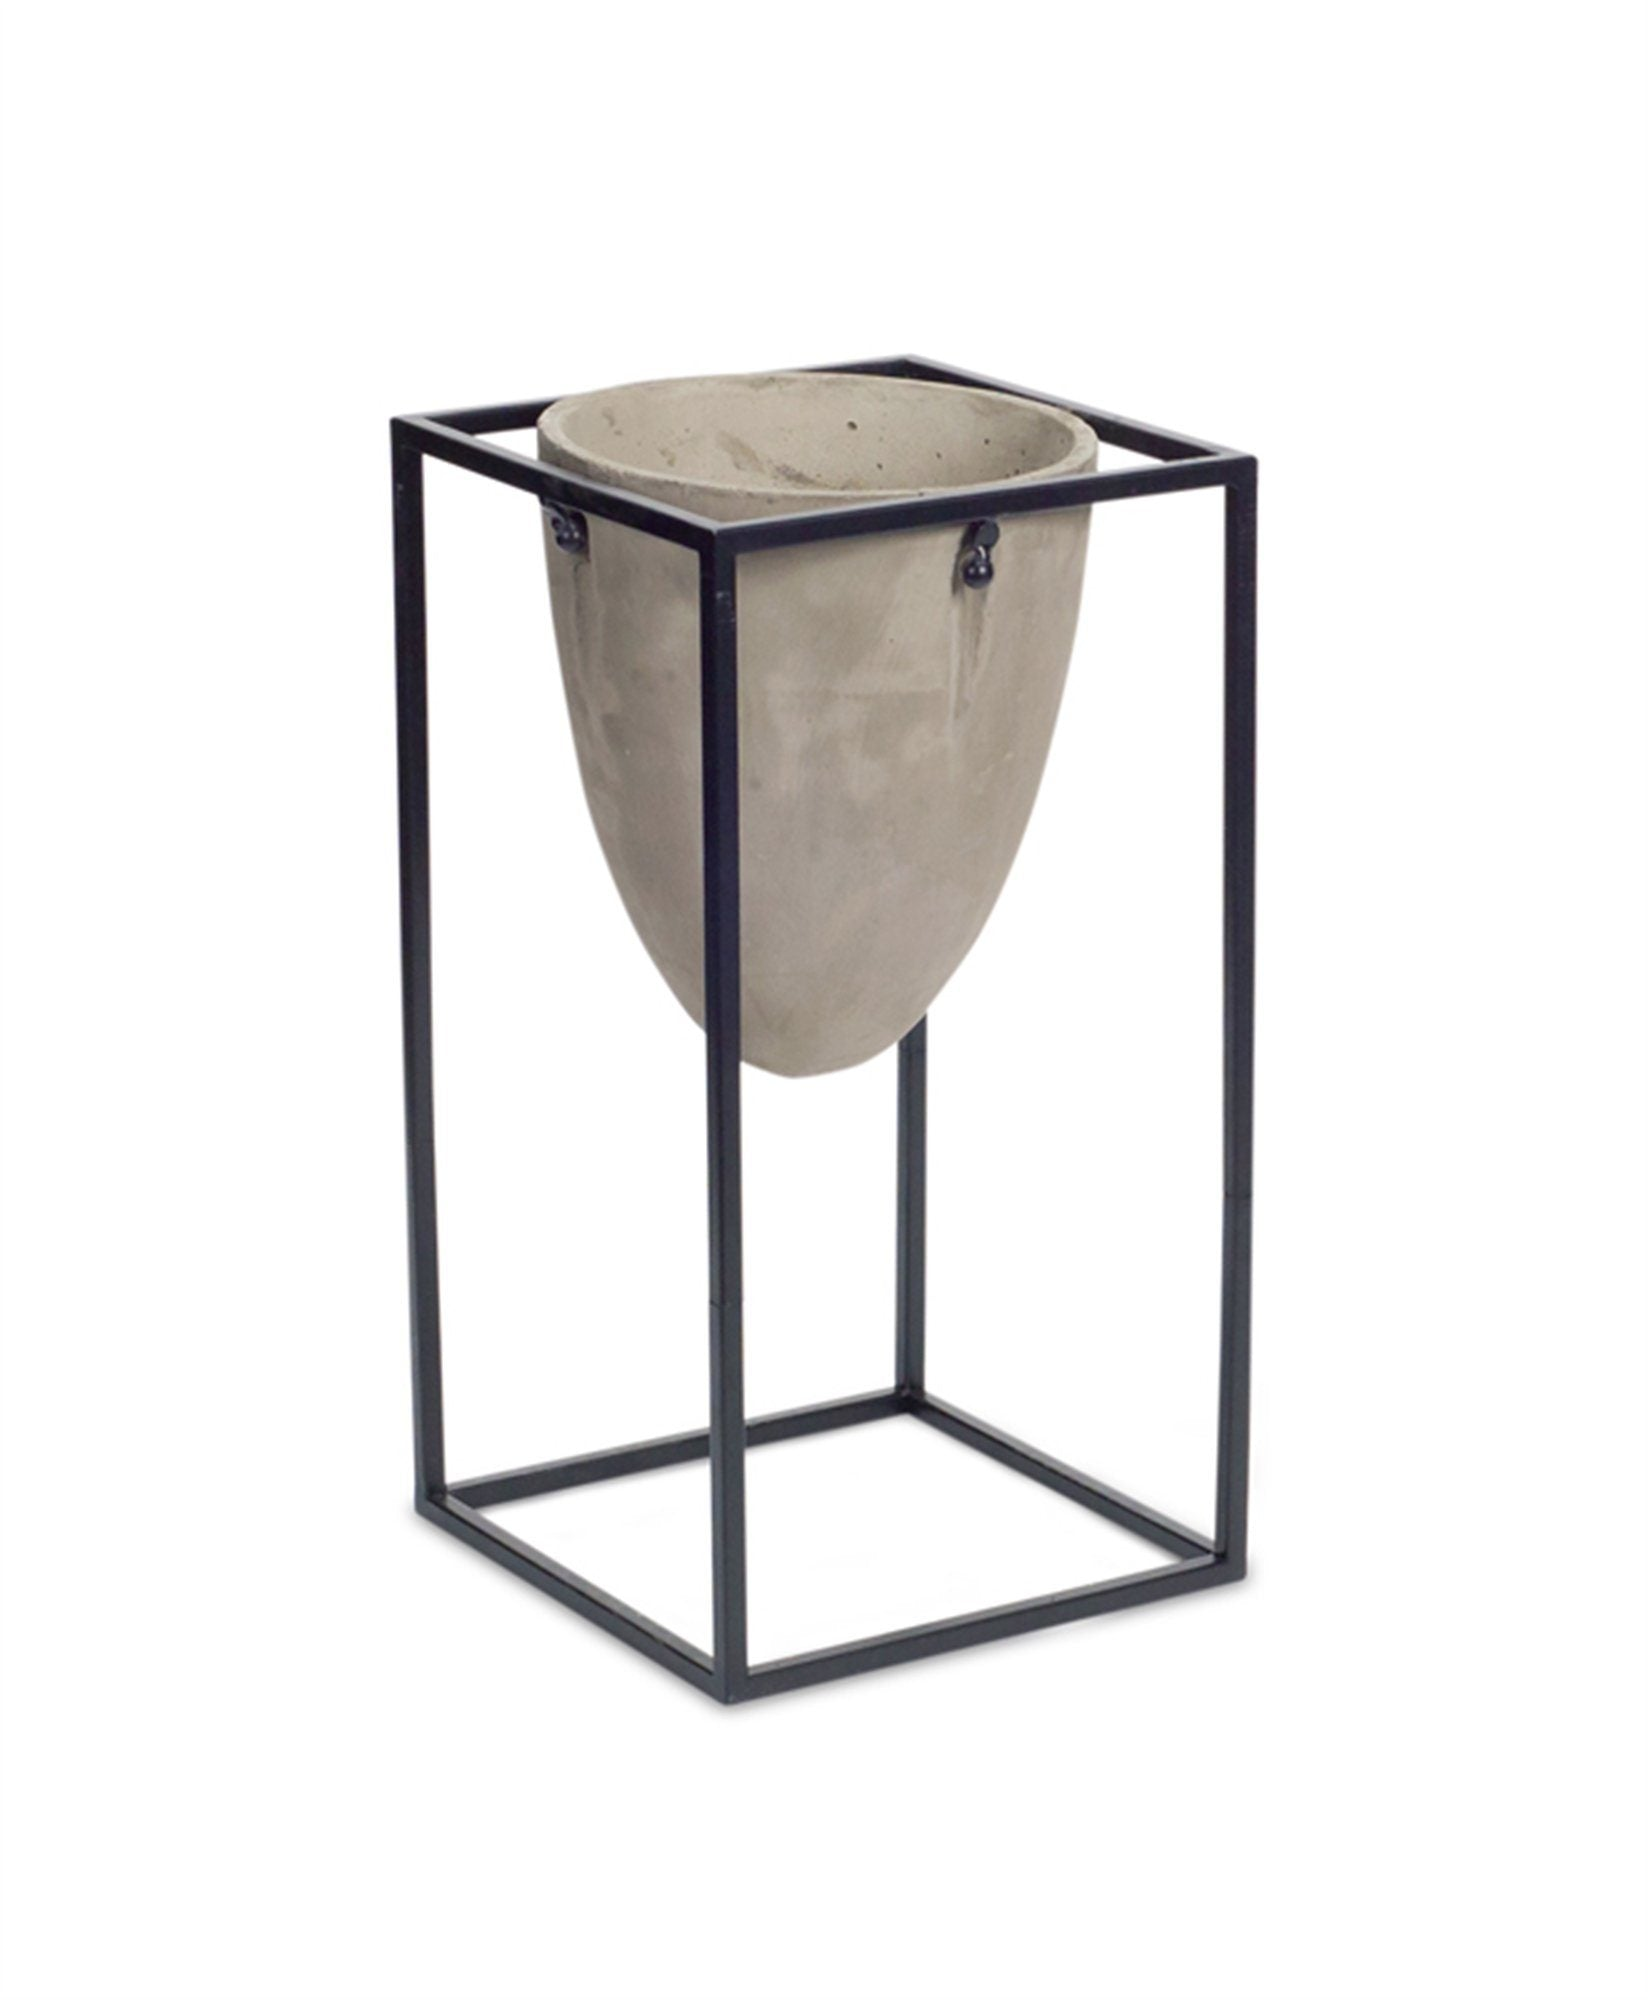 "Lahinch Industrial Cement Pot Stand (25.5""H) Melrose"